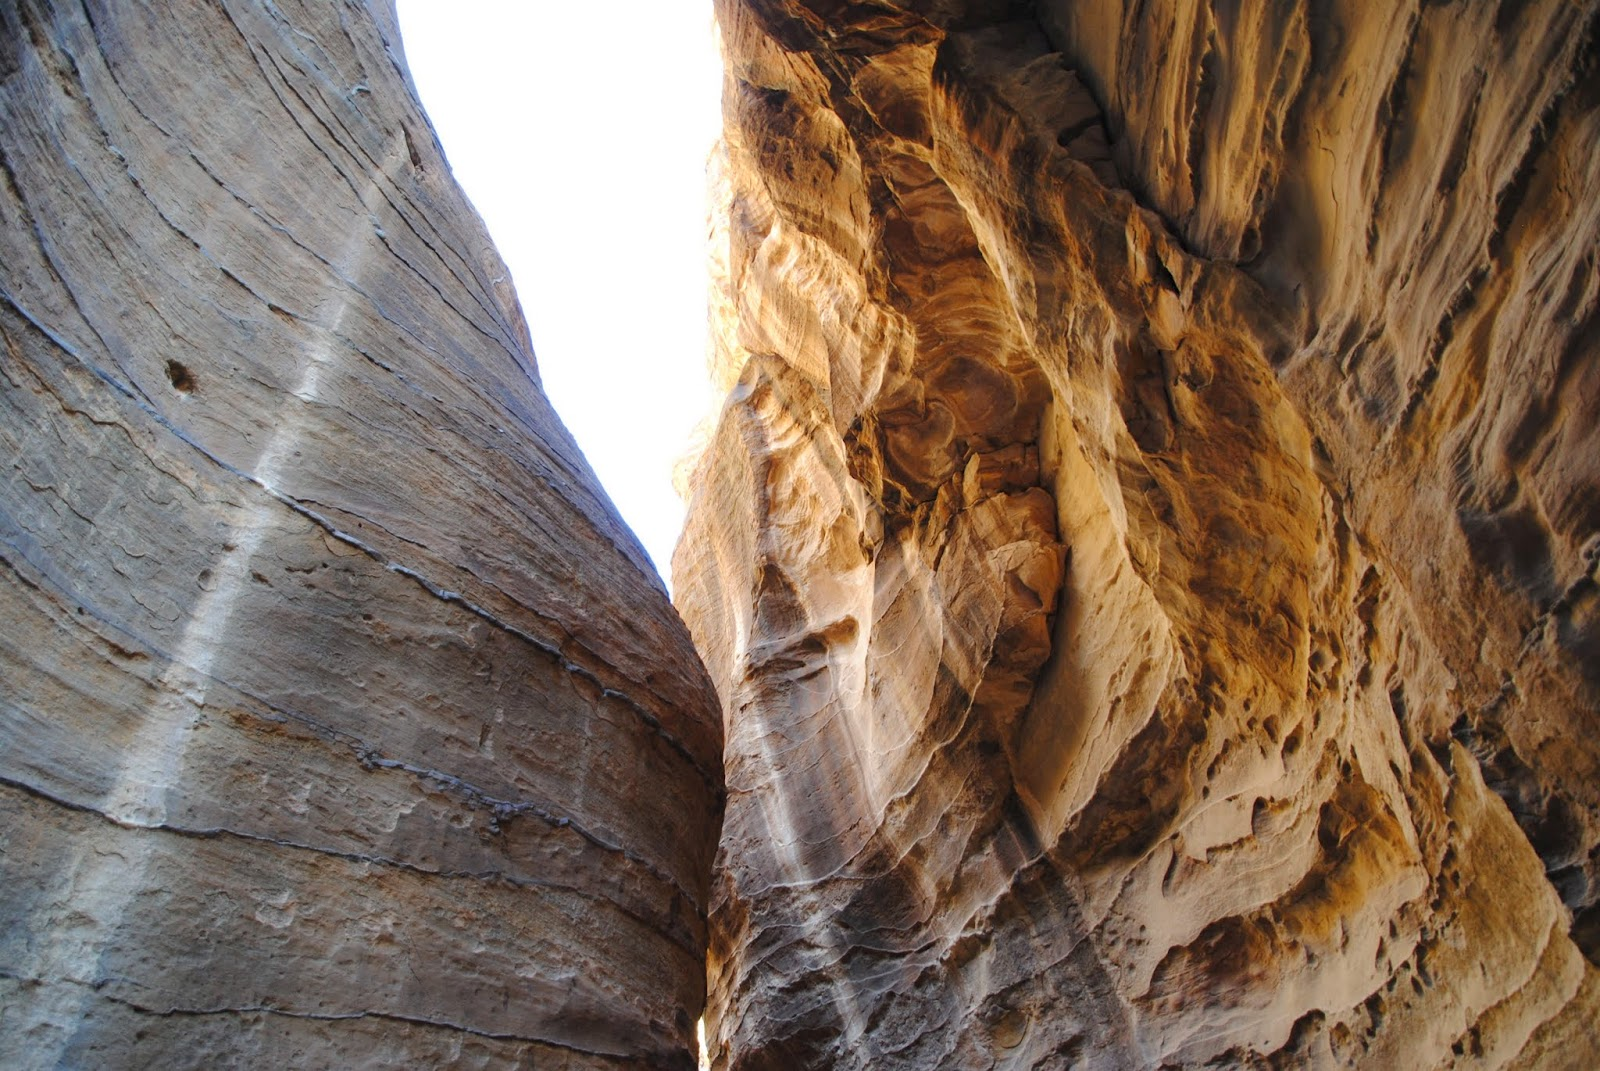 My Photos: Jordan -- Petra -- The Siq